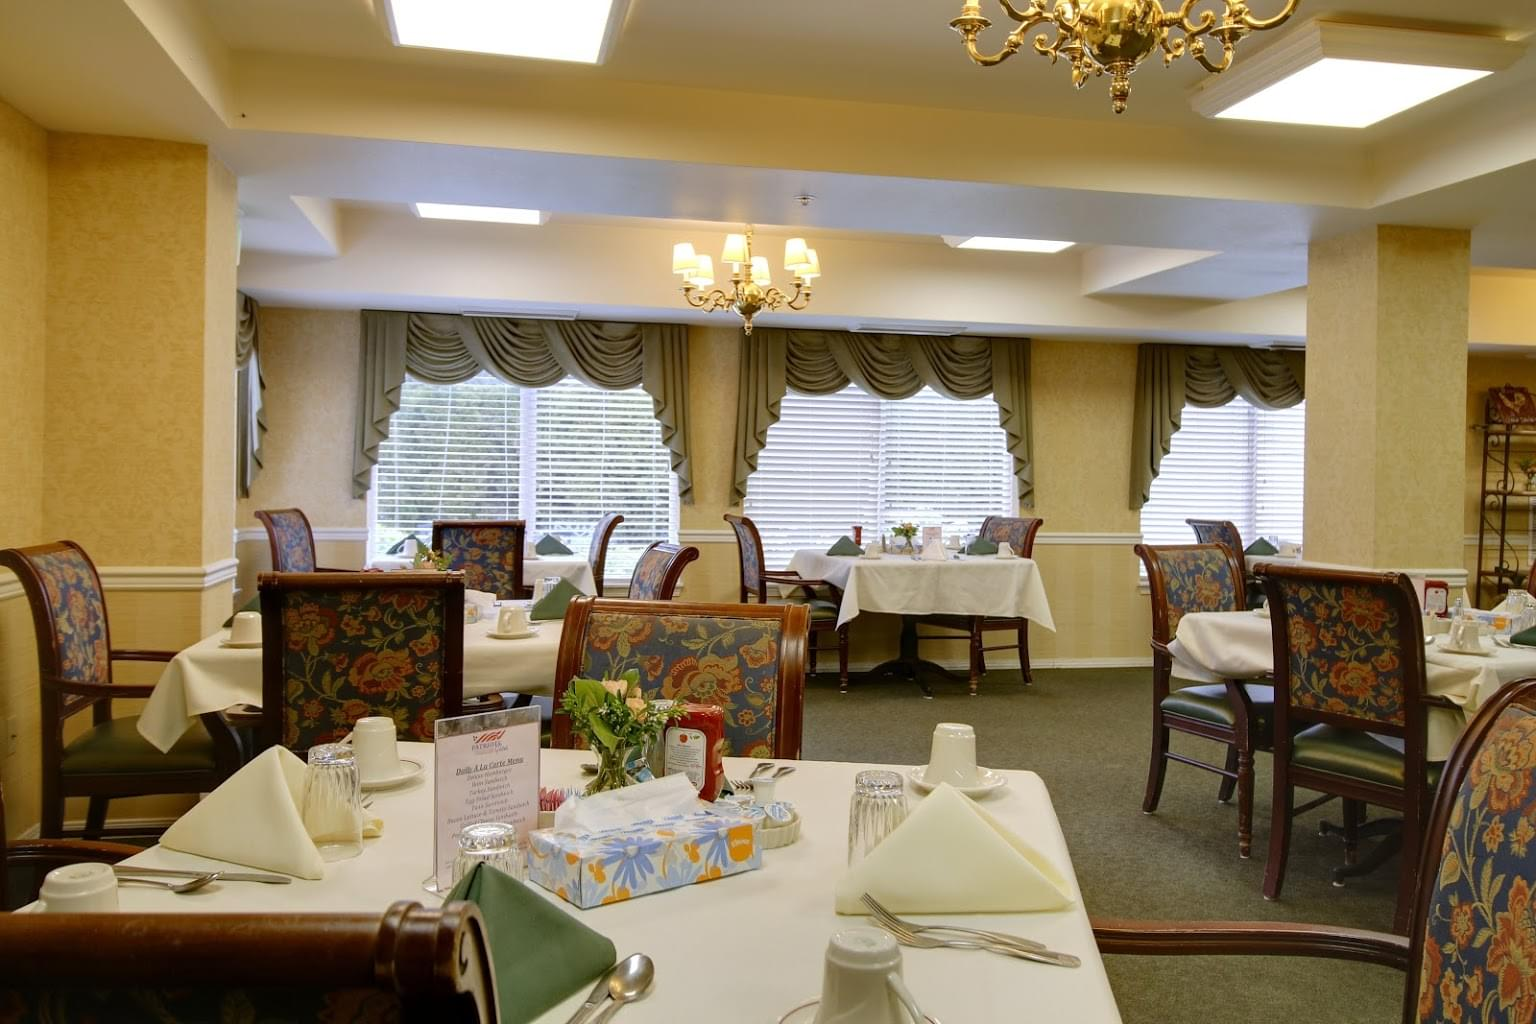 Patriots Glen Assisted living facility in Bellevue, WA dining hall